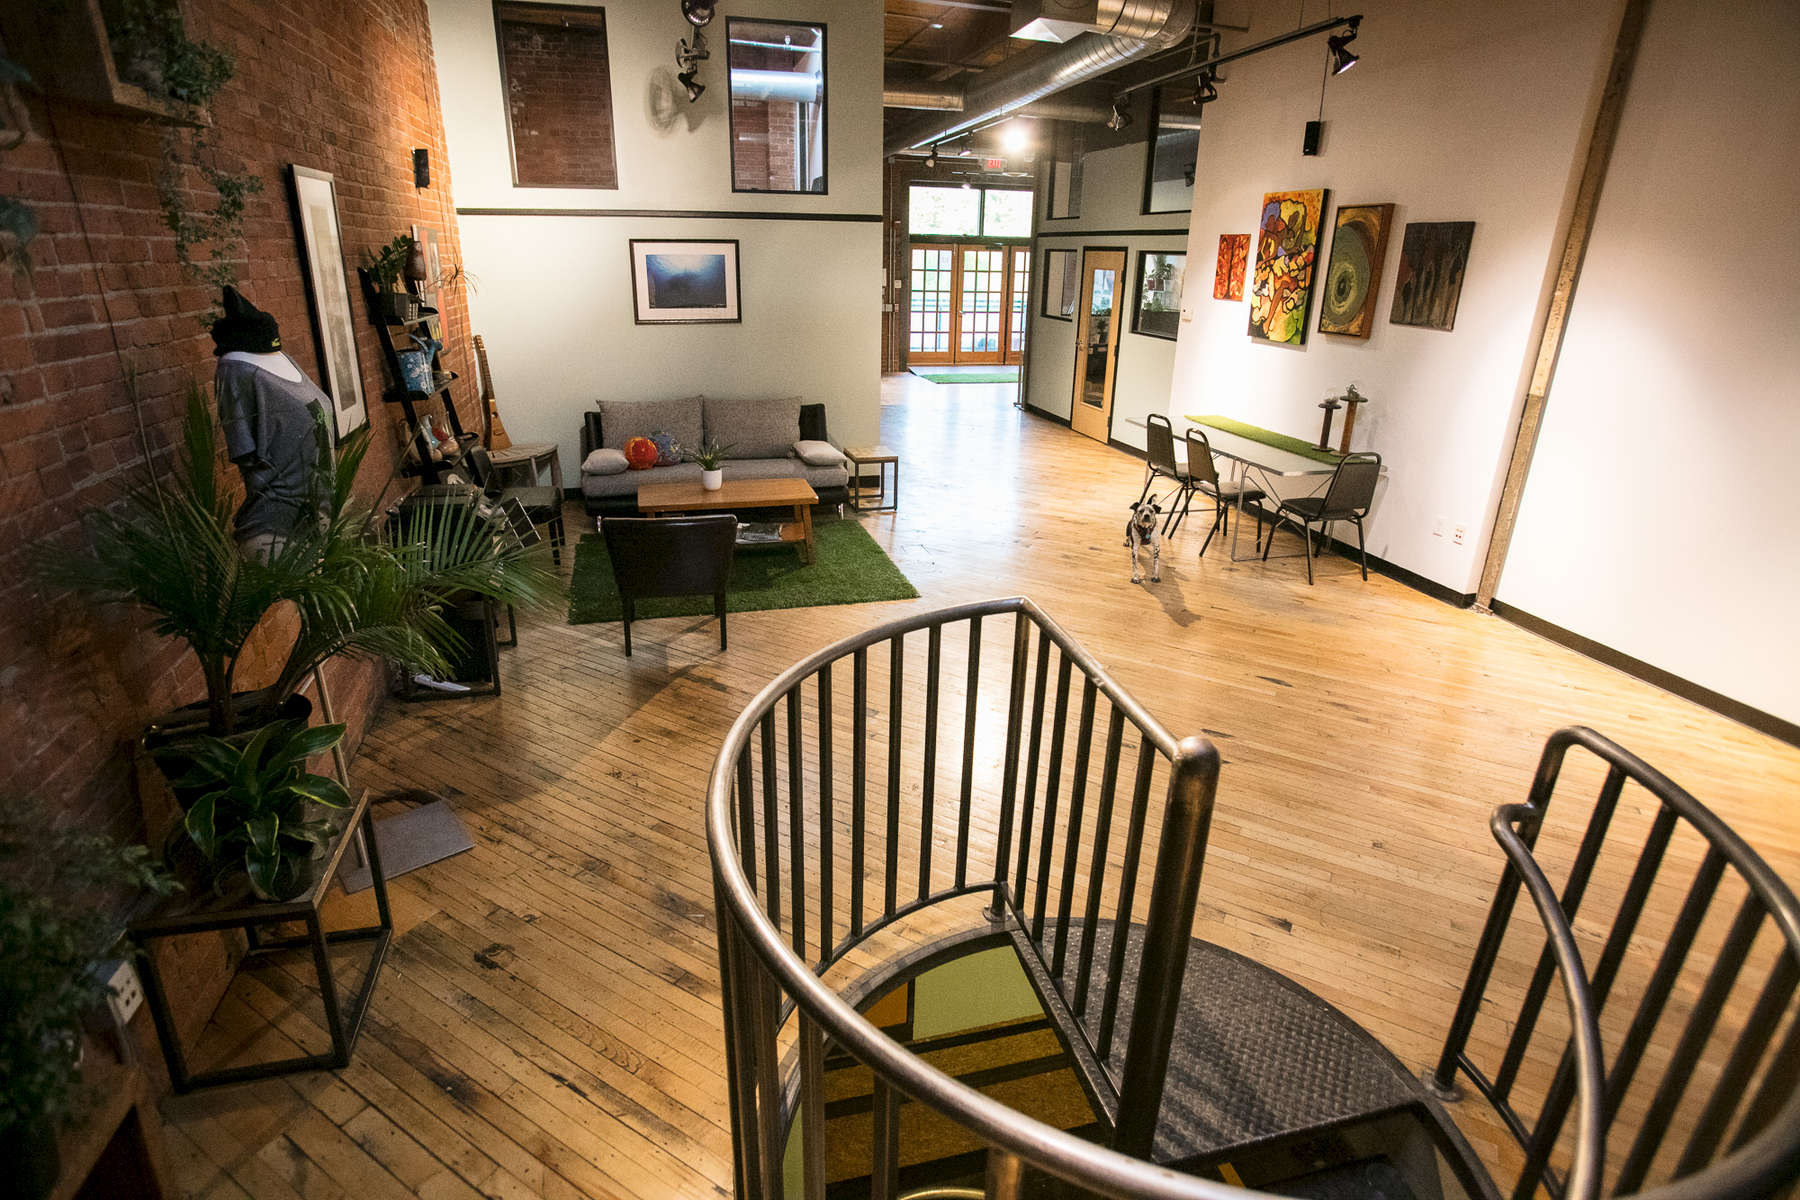 Main loft at 208 Flynn Suite 2J in Burlington Vermont by JAM Creative, a venue space for rentals, parties, workshops, networking and more.